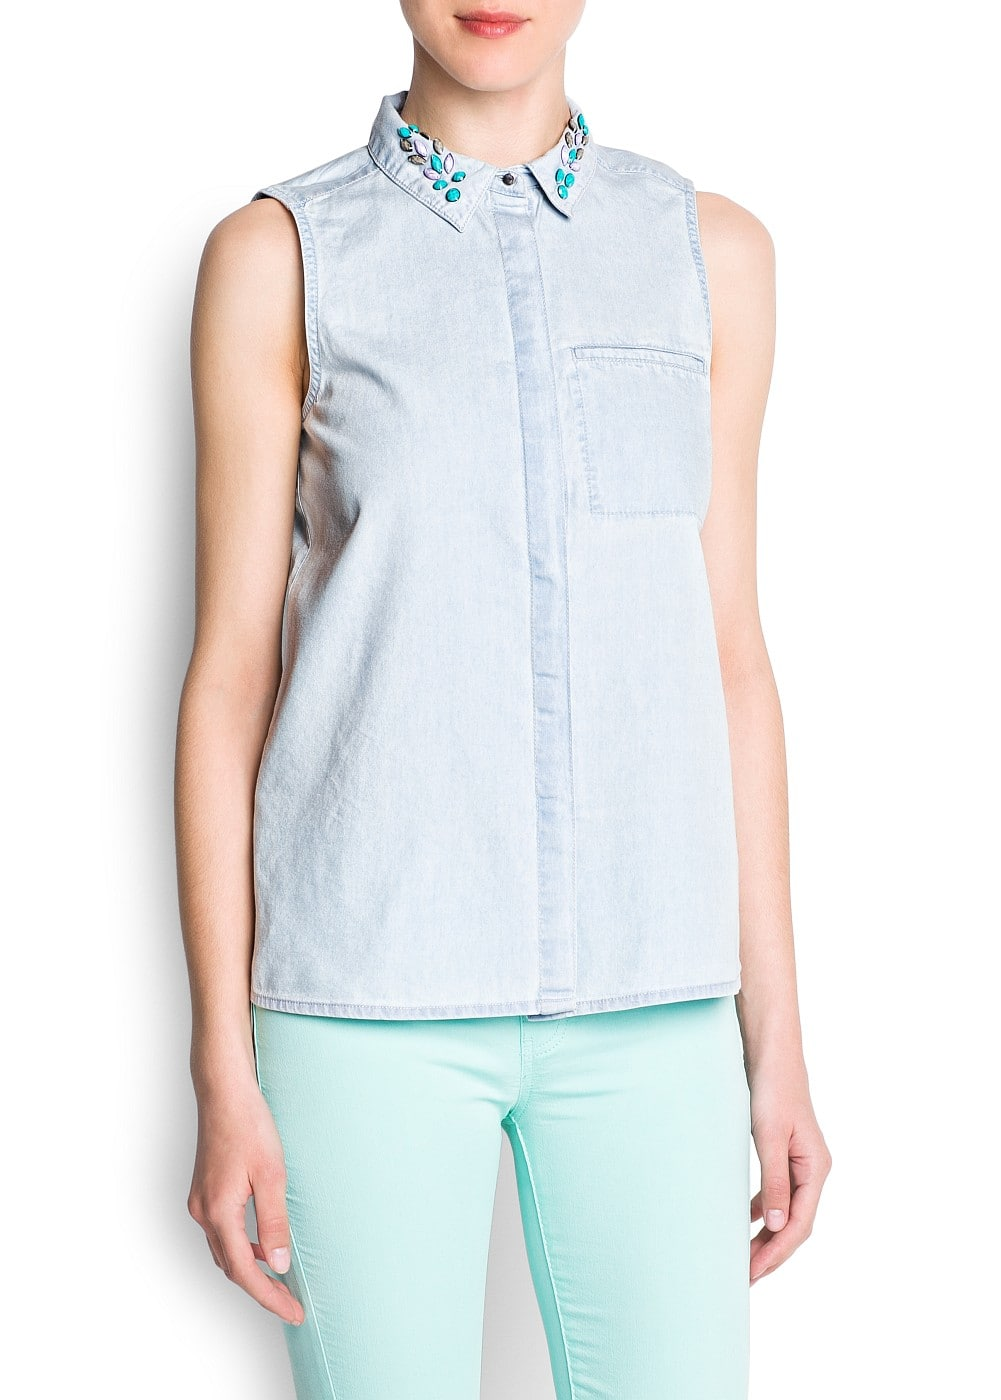 Crystals denim shirt